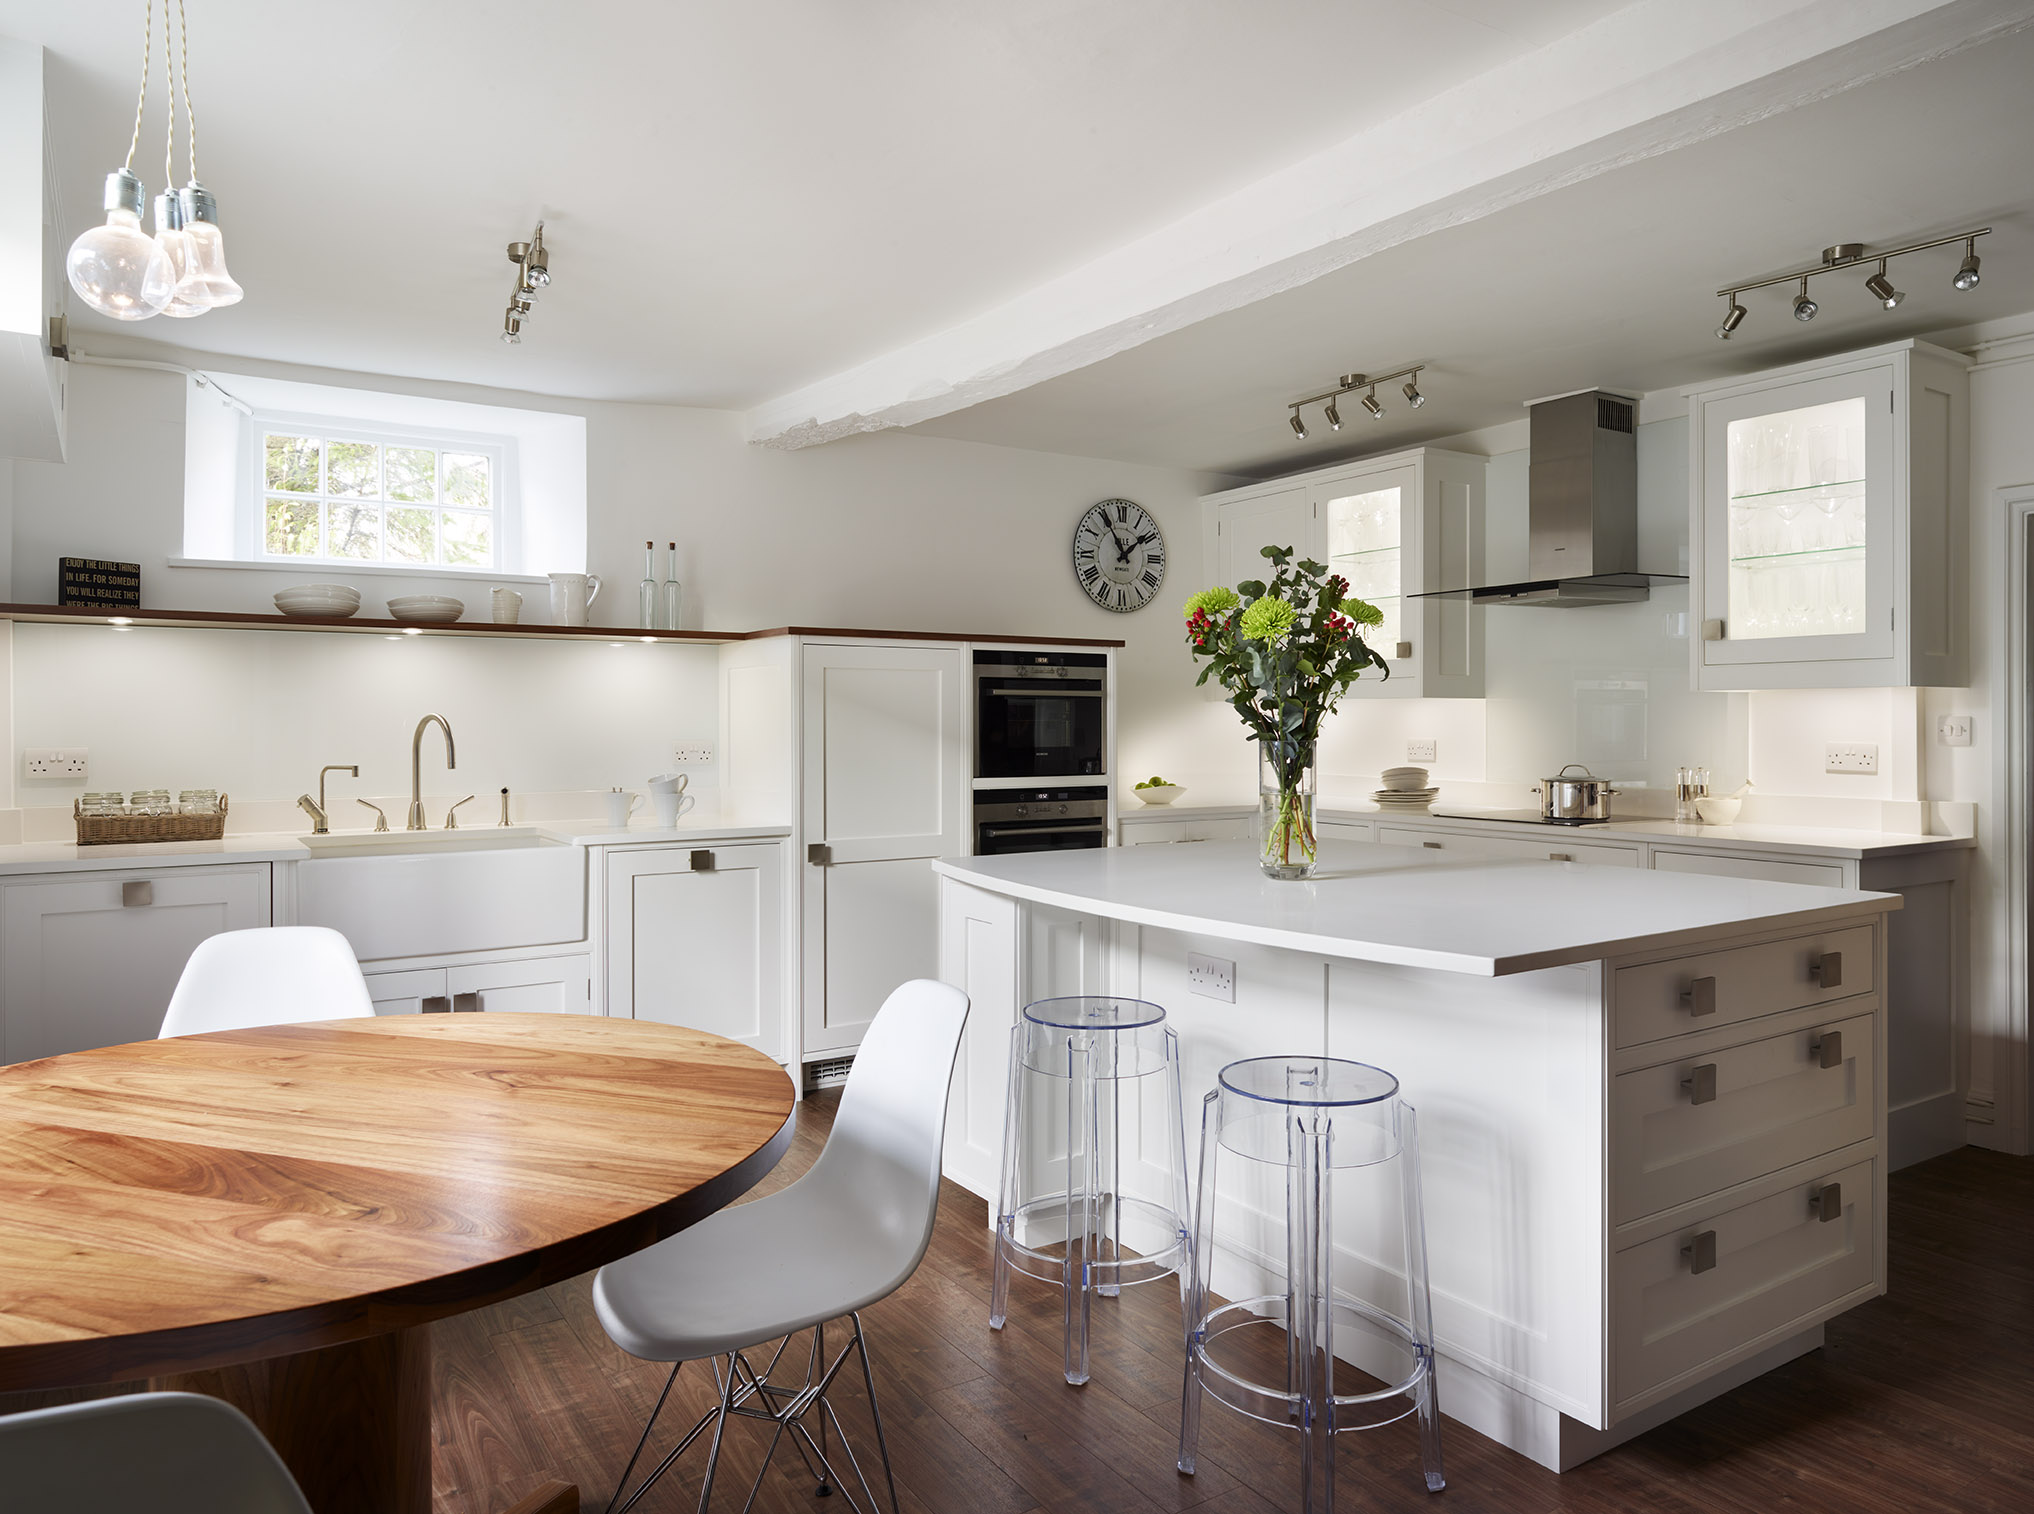 Stoke Goldington - Light and bright shaker kitchen with bespoke walnut circular table